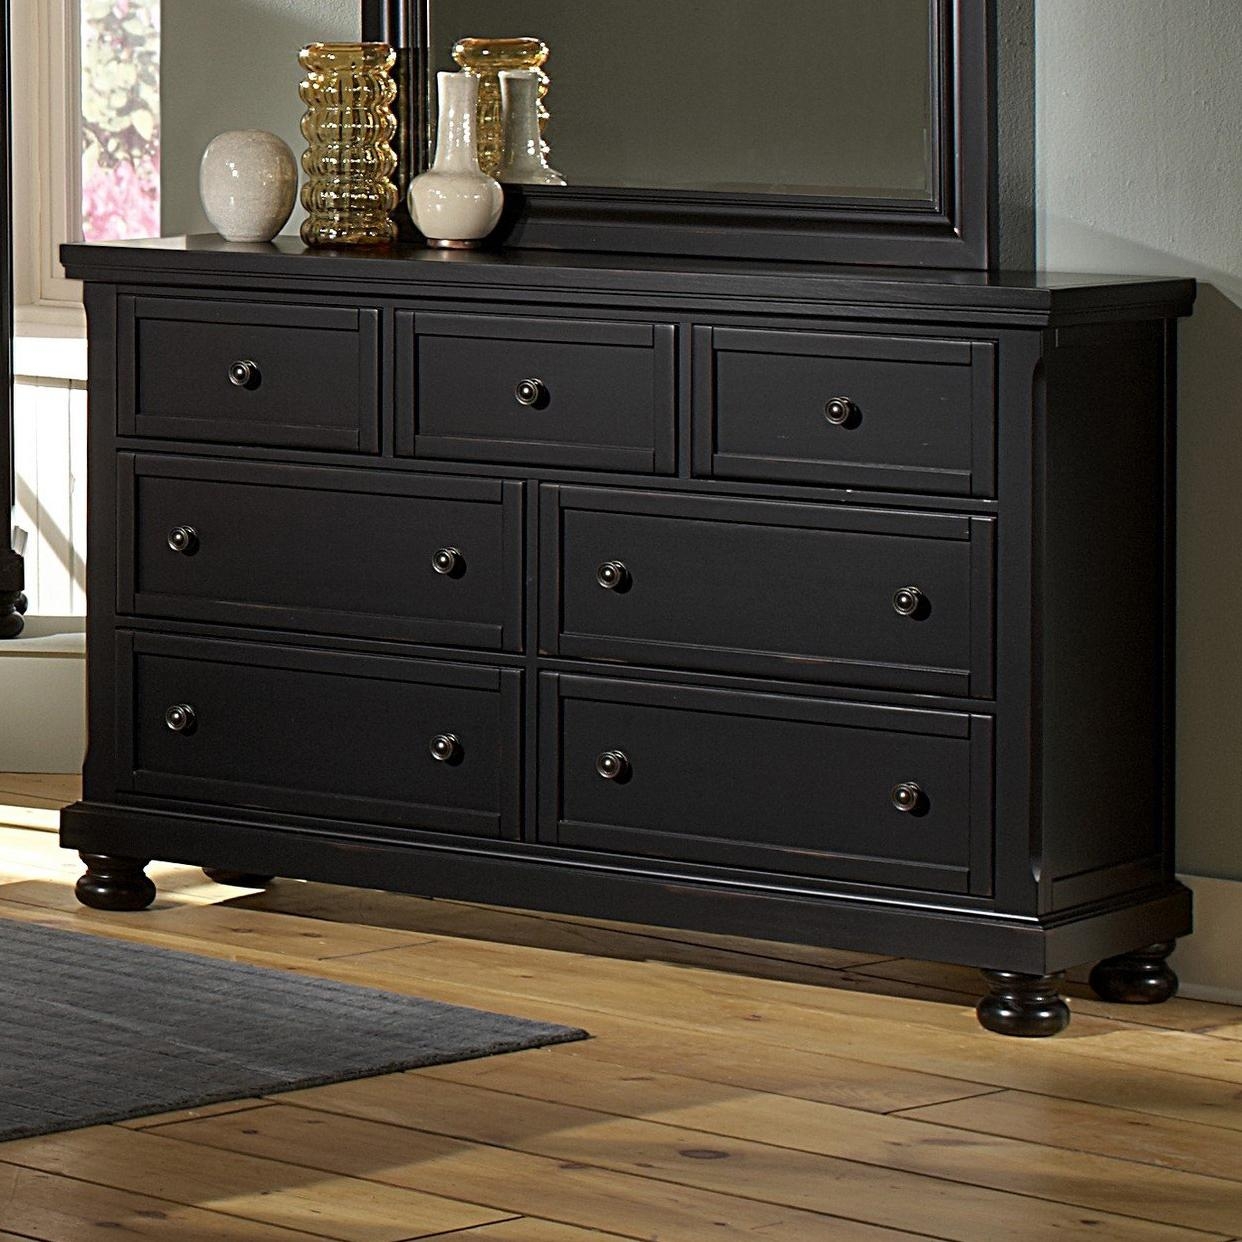 Vaughan Bassett Reflections Triple Dresser 7 Drawers Value City Furniture Dressers